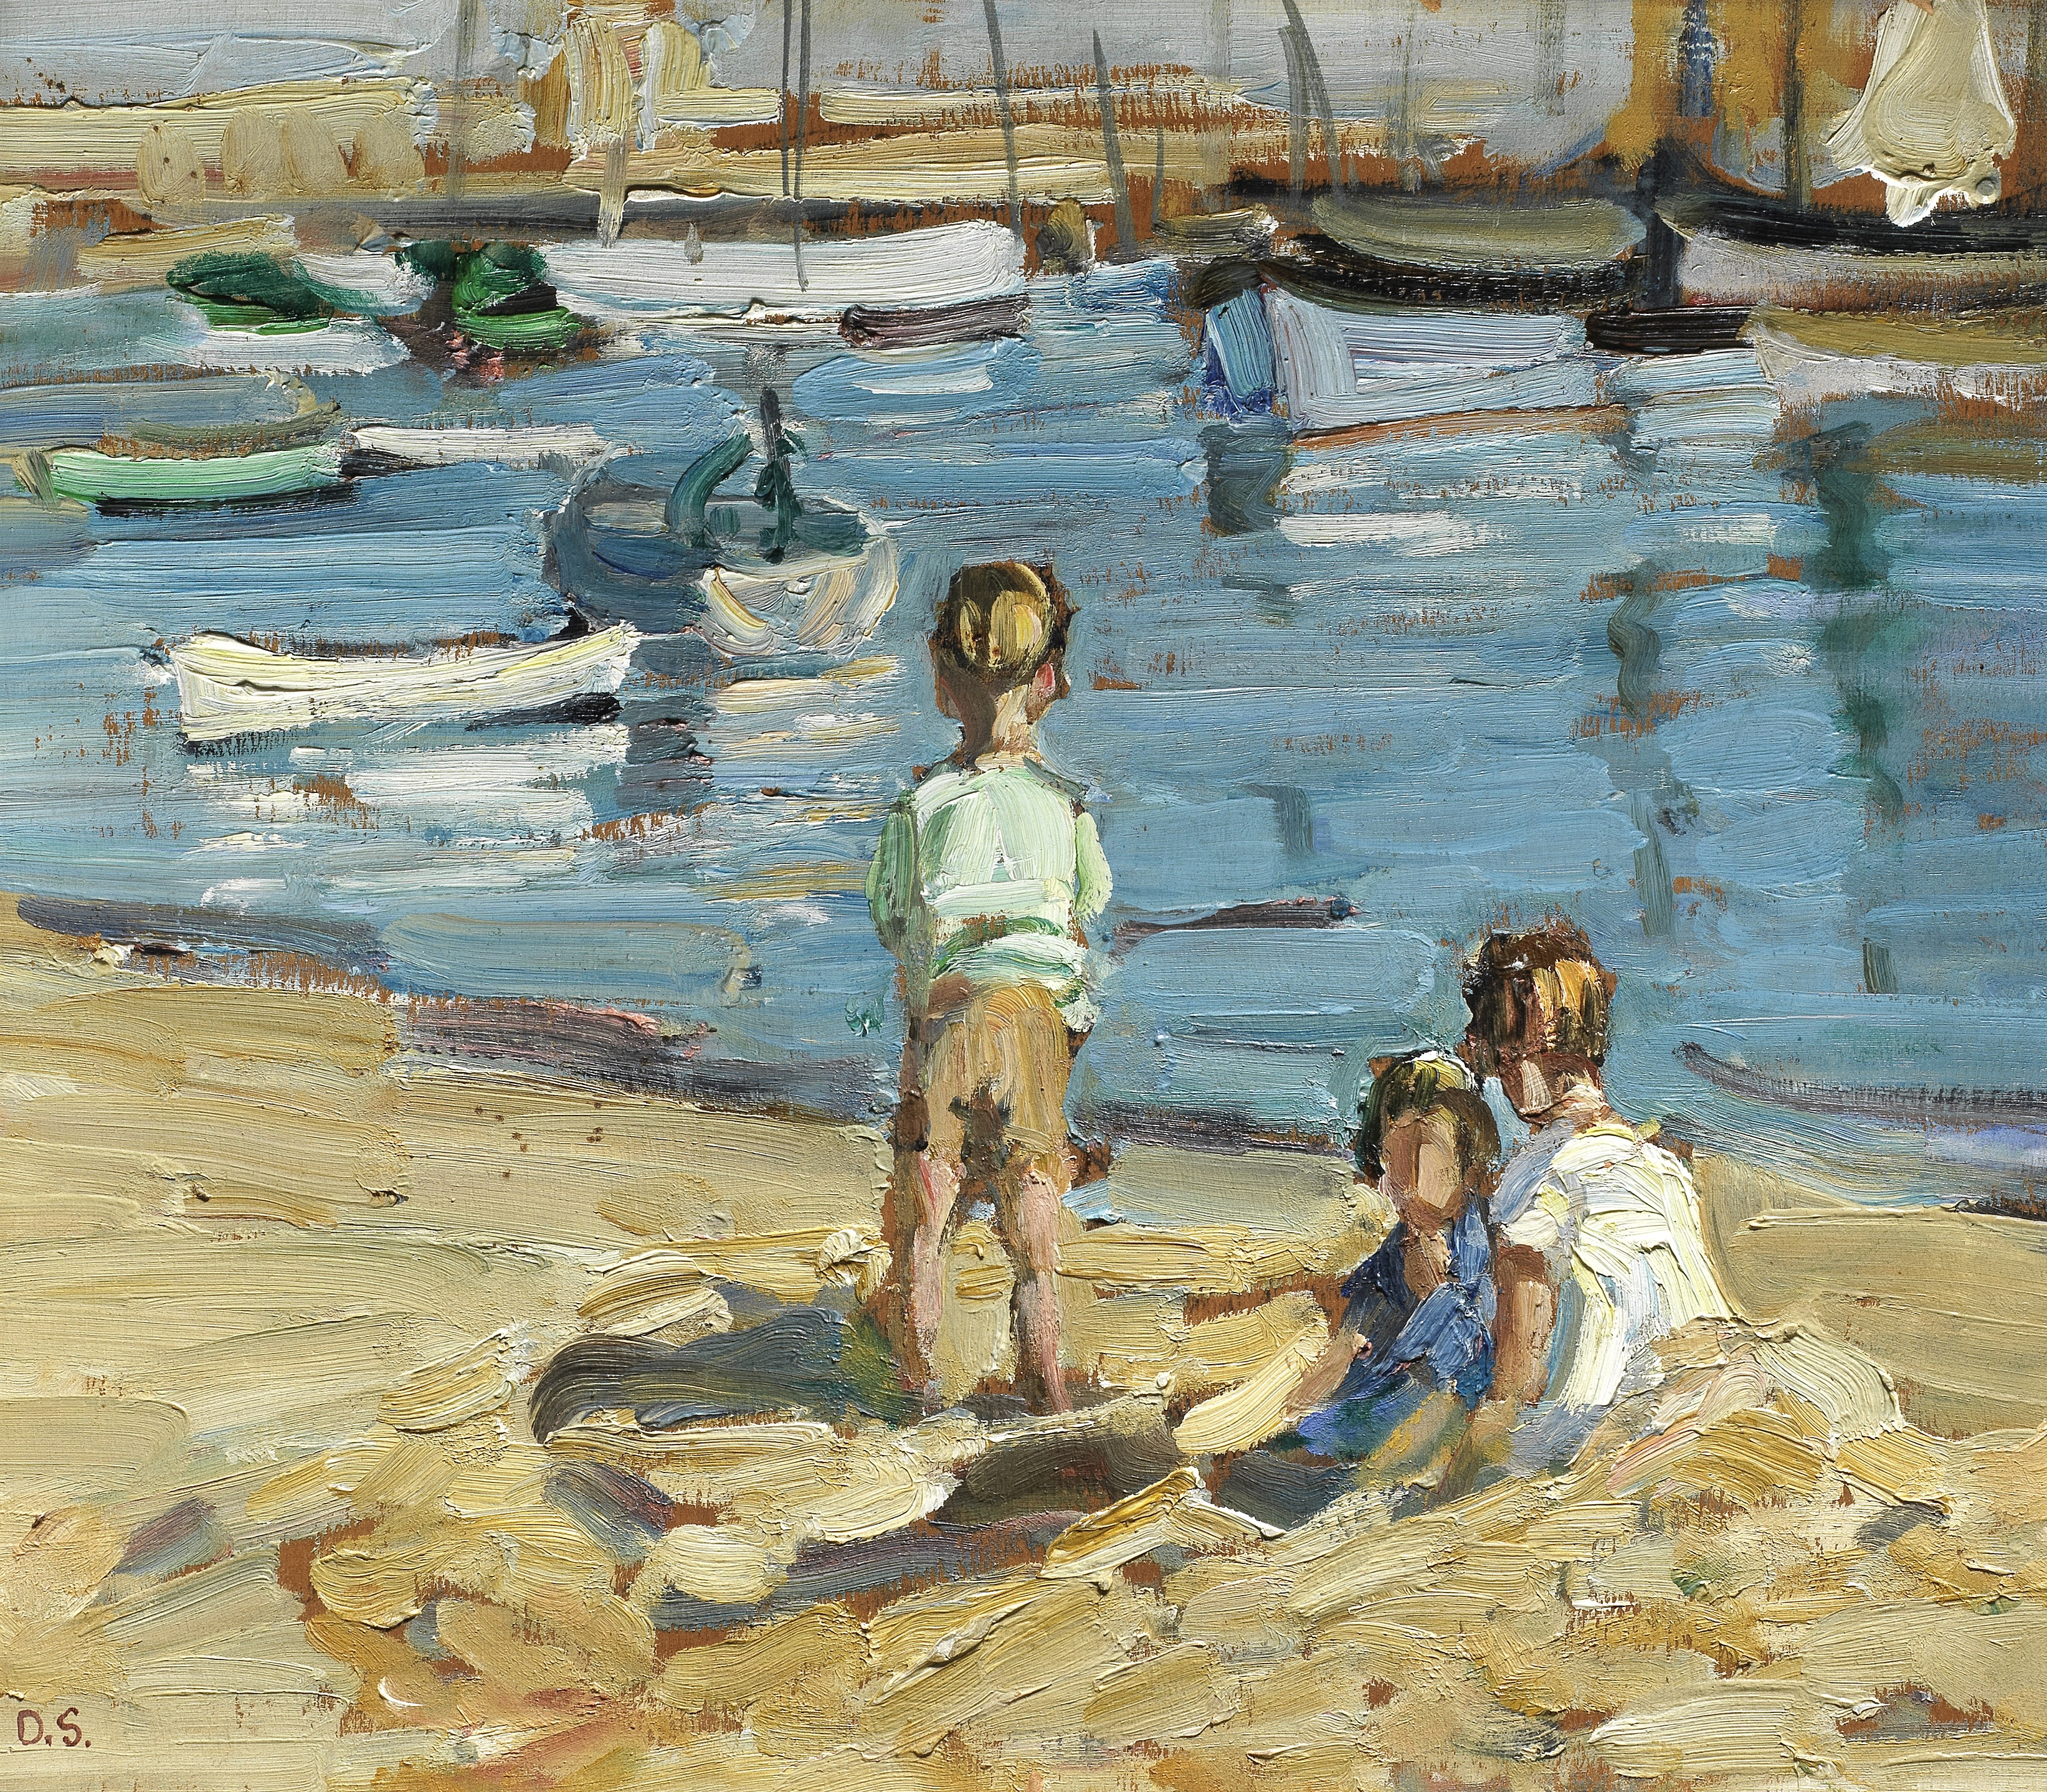 Dorothea Sharp, RBA, ROI (British, 1874-1955) Children playing by a harbour